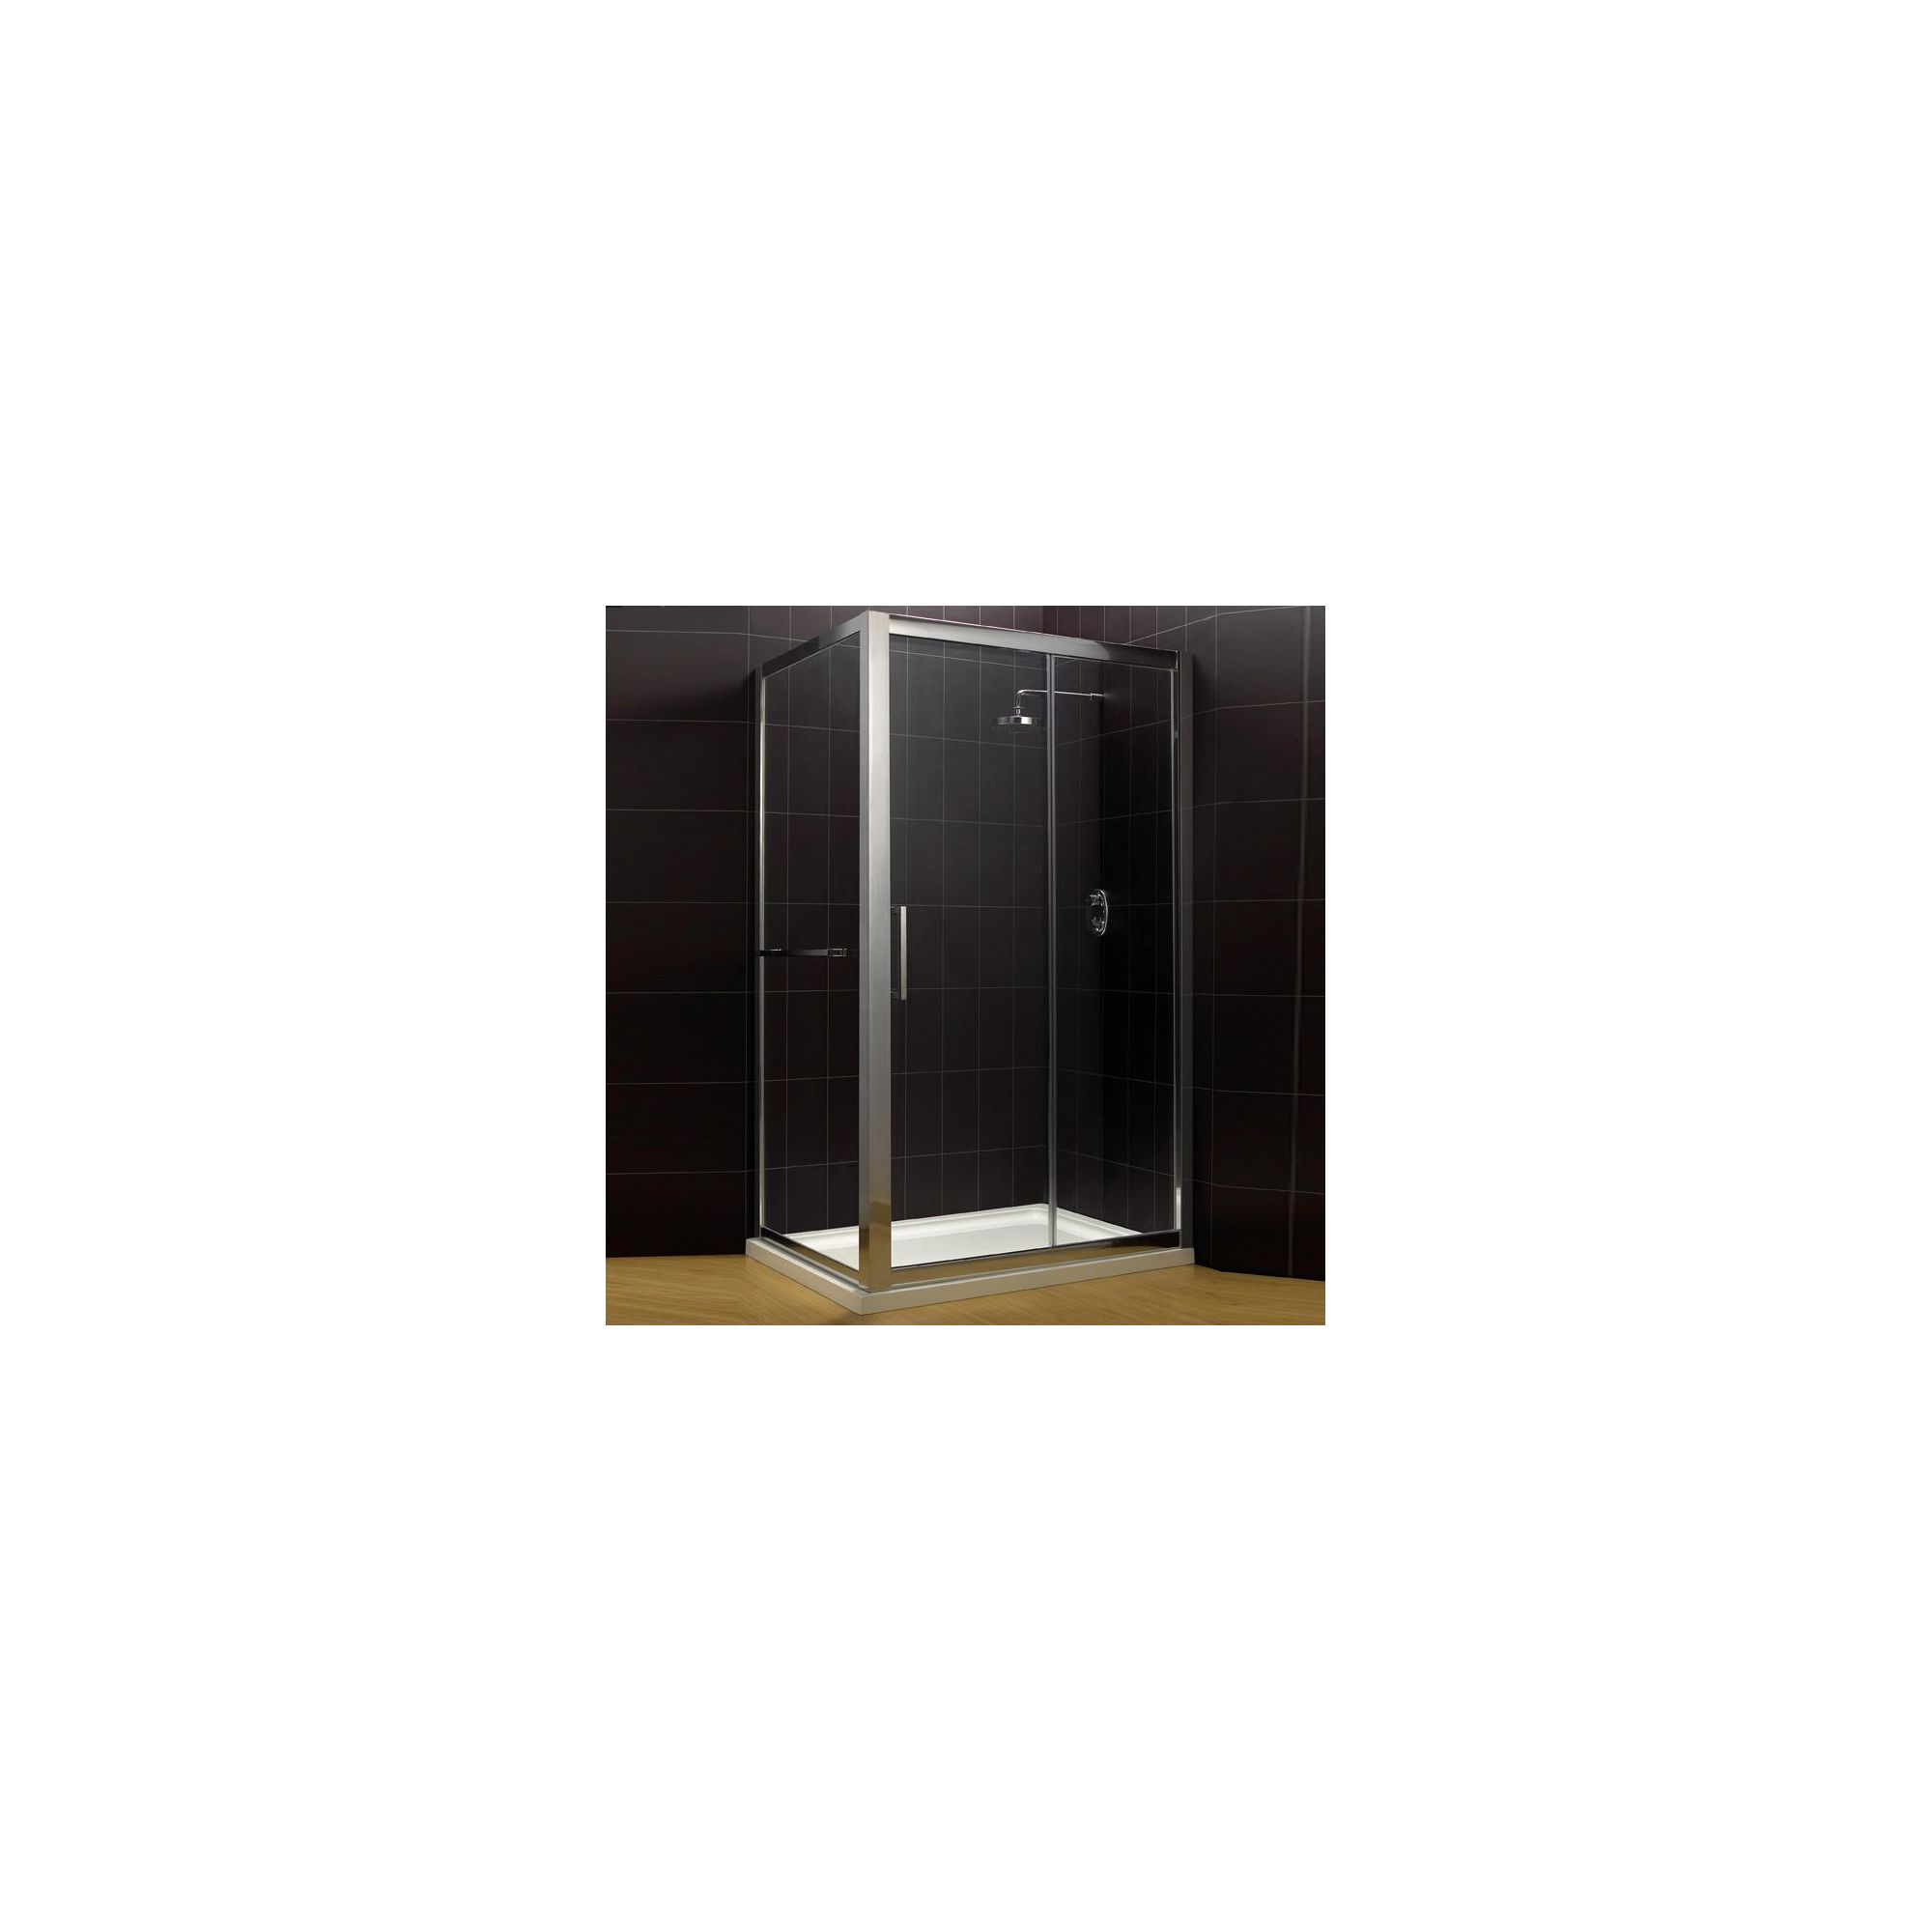 Duchy Supreme Silver Sliding Door Shower Enclosure with Towel Rail, 1600mm x 800mm, Standard Tray, 8mm Glass at Tesco Direct